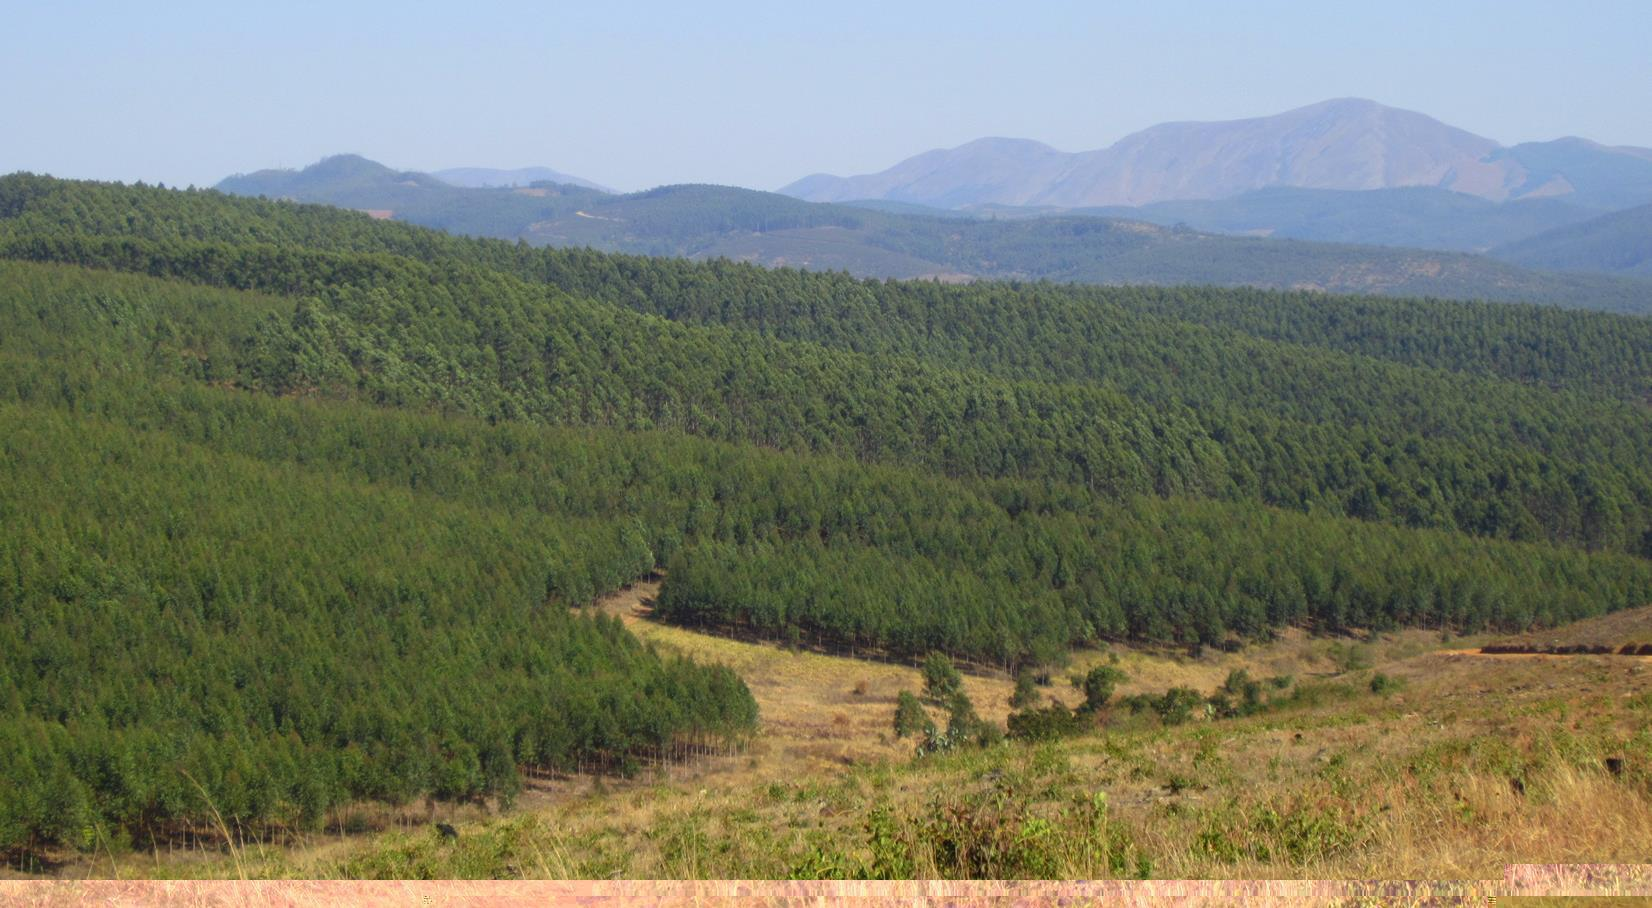 Plantations near Piggs Peak.